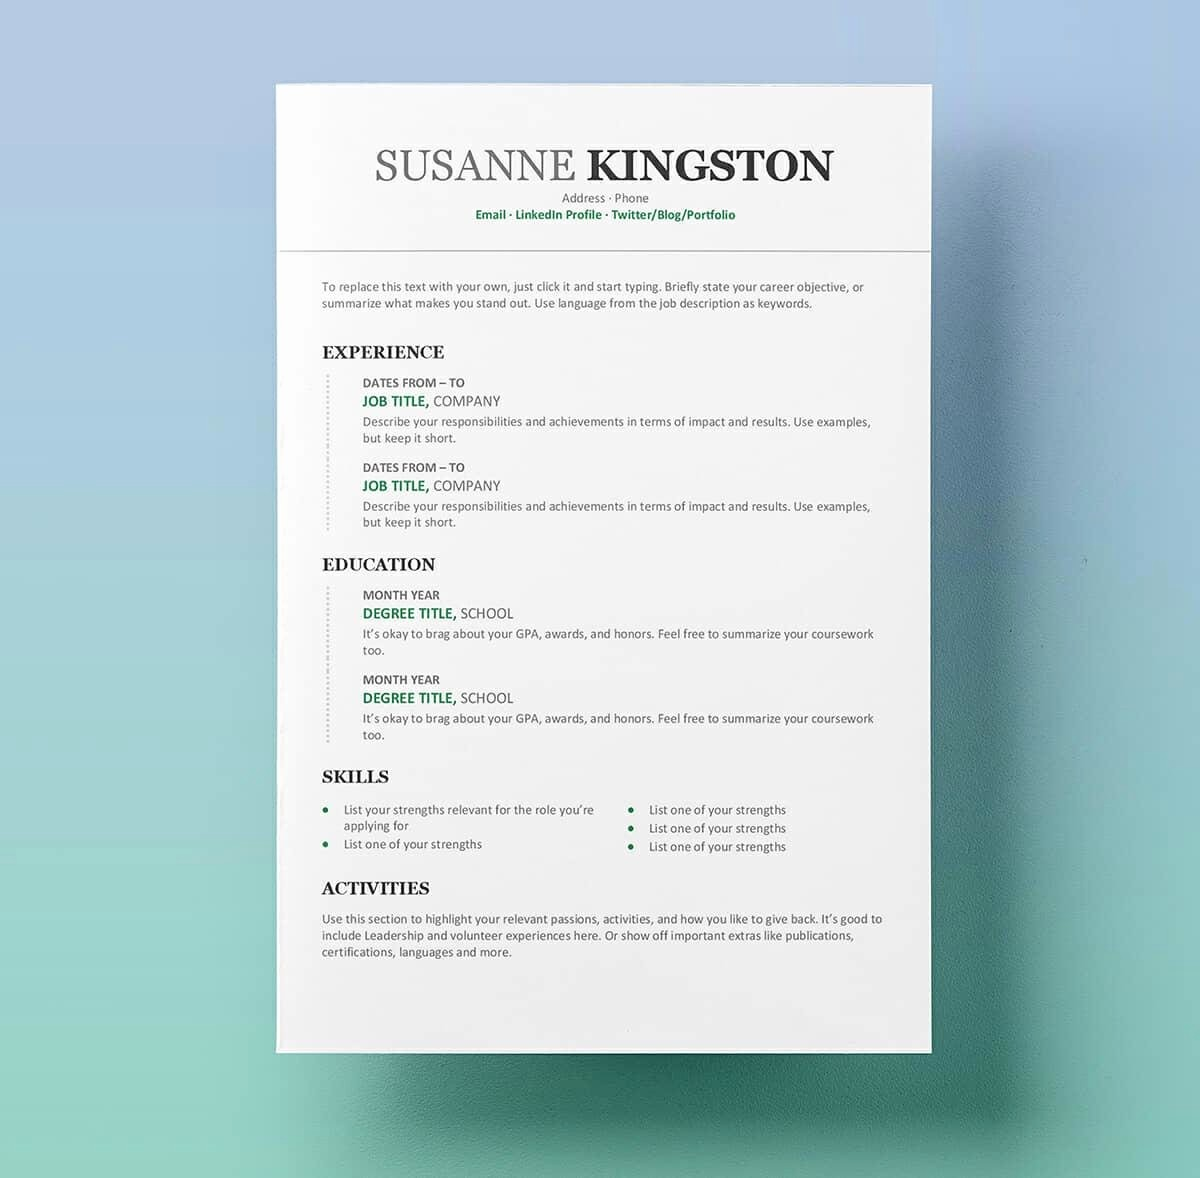 Professional Resume Templates Microsoft Word Fresh Resume Templates for Word Free 15 Examples for Download